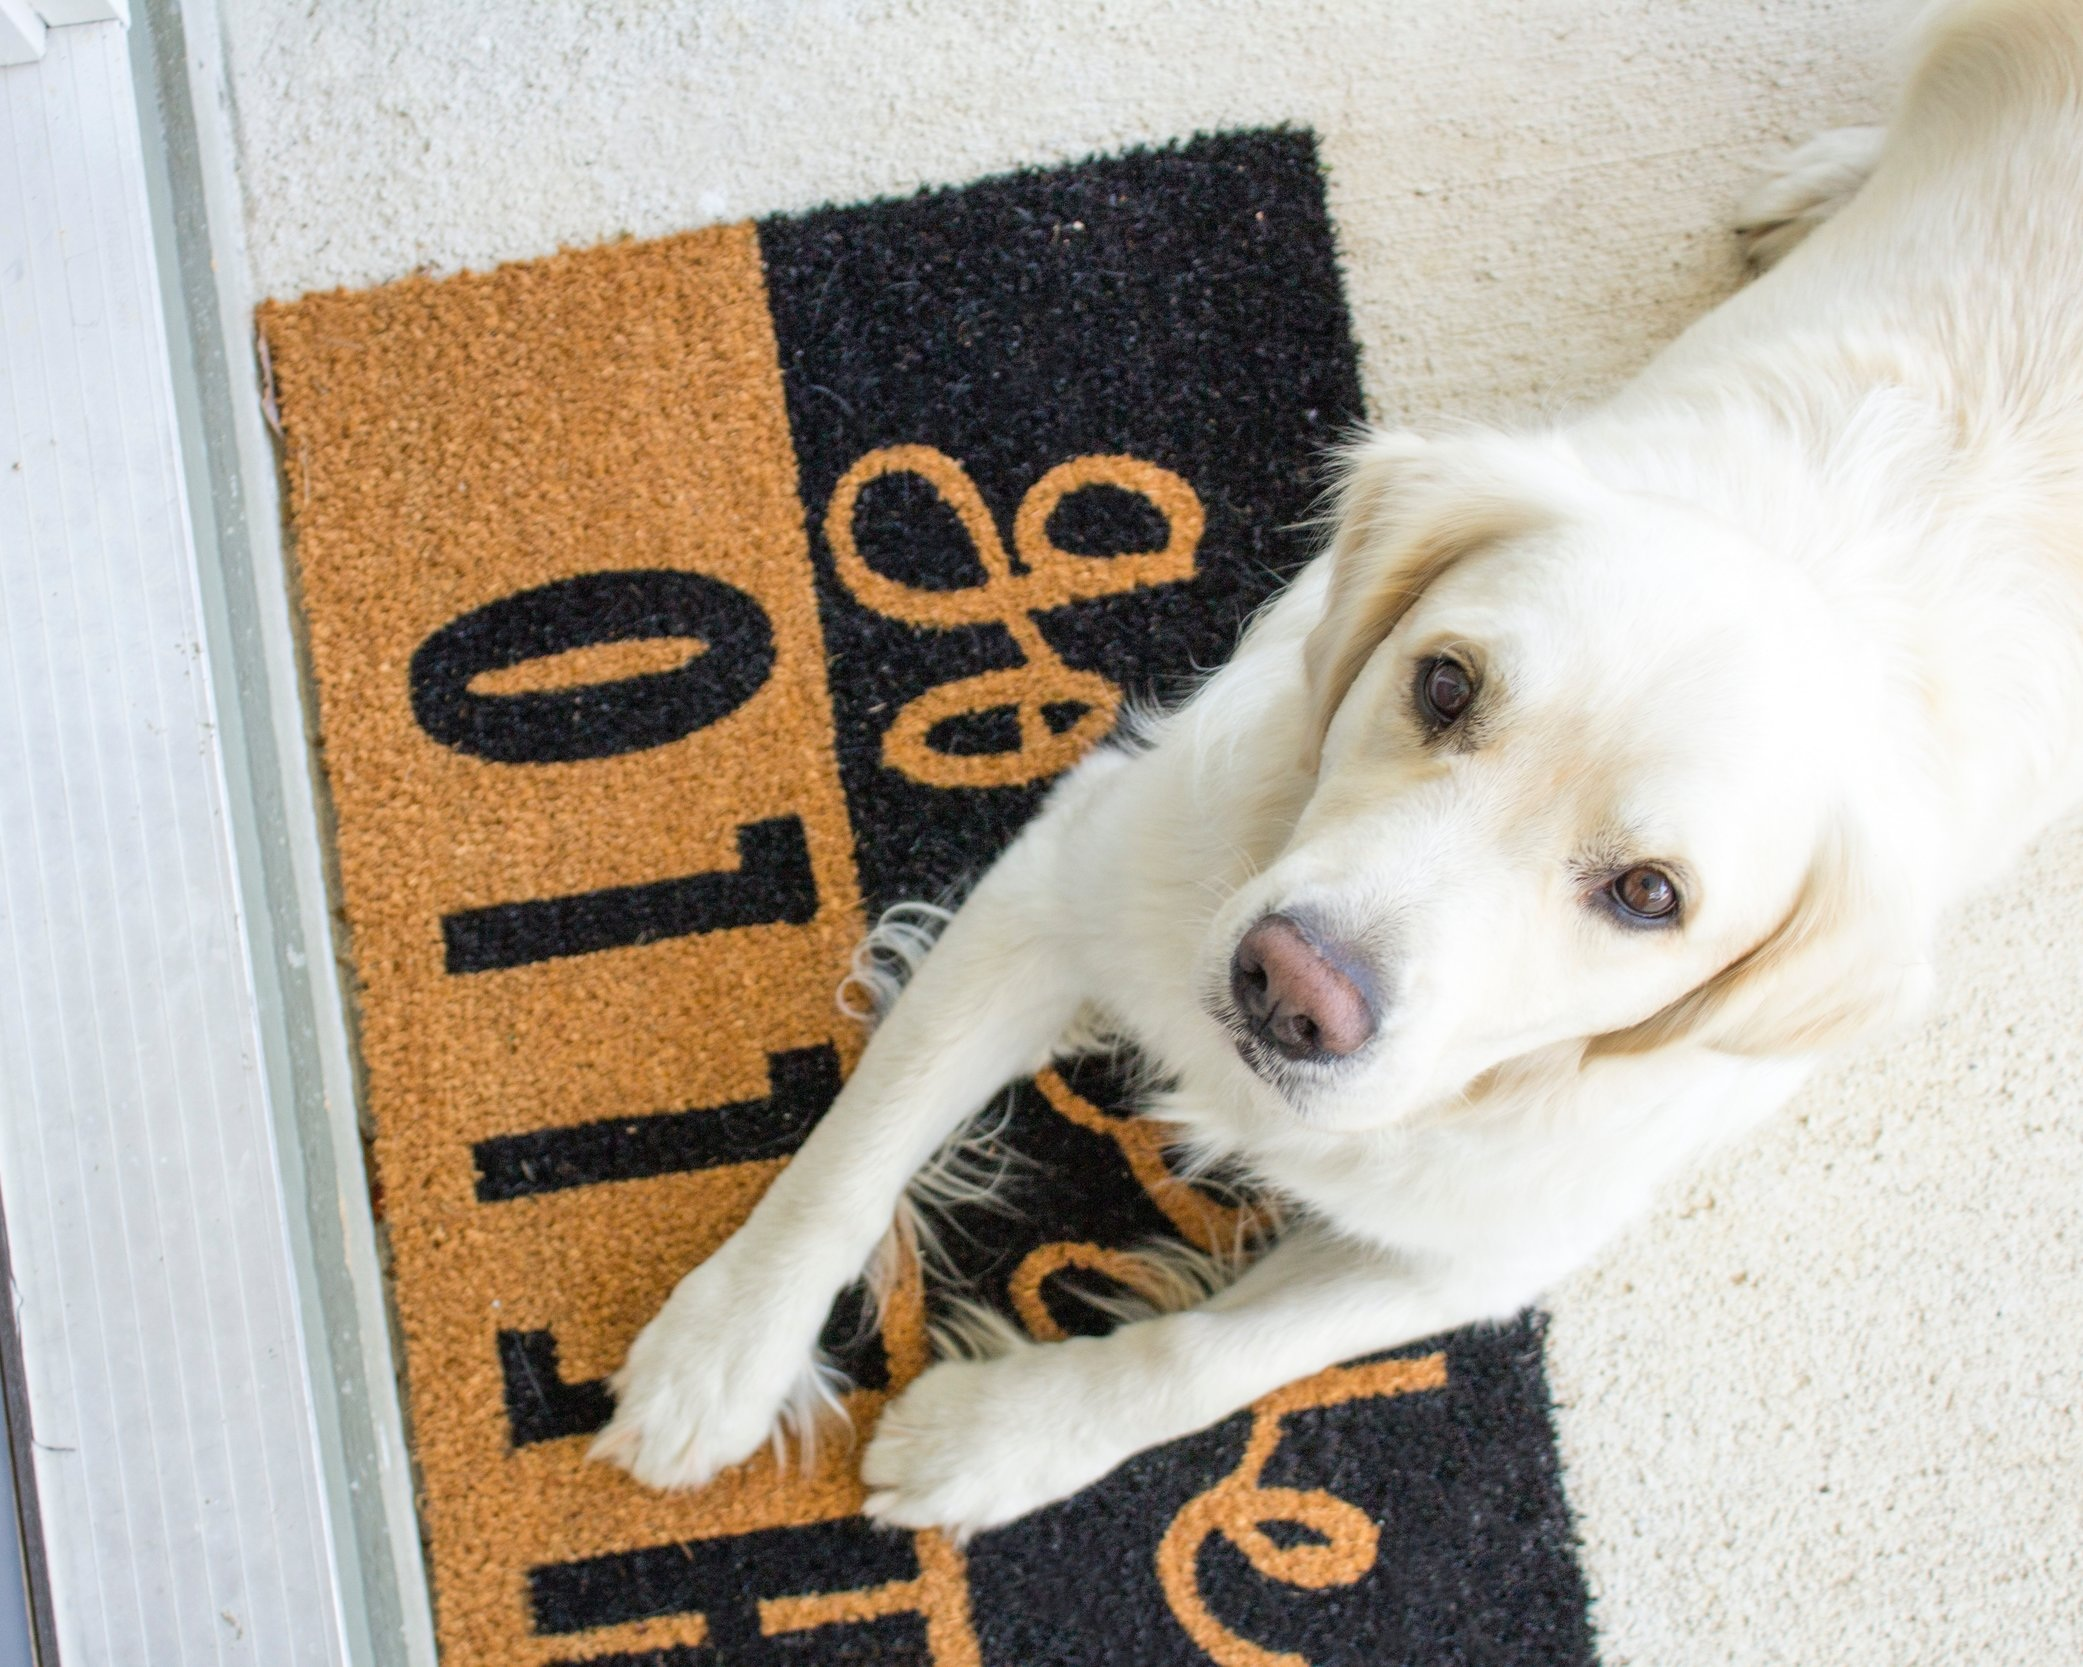 Teach your dog where to go and what to do when guests arrive.